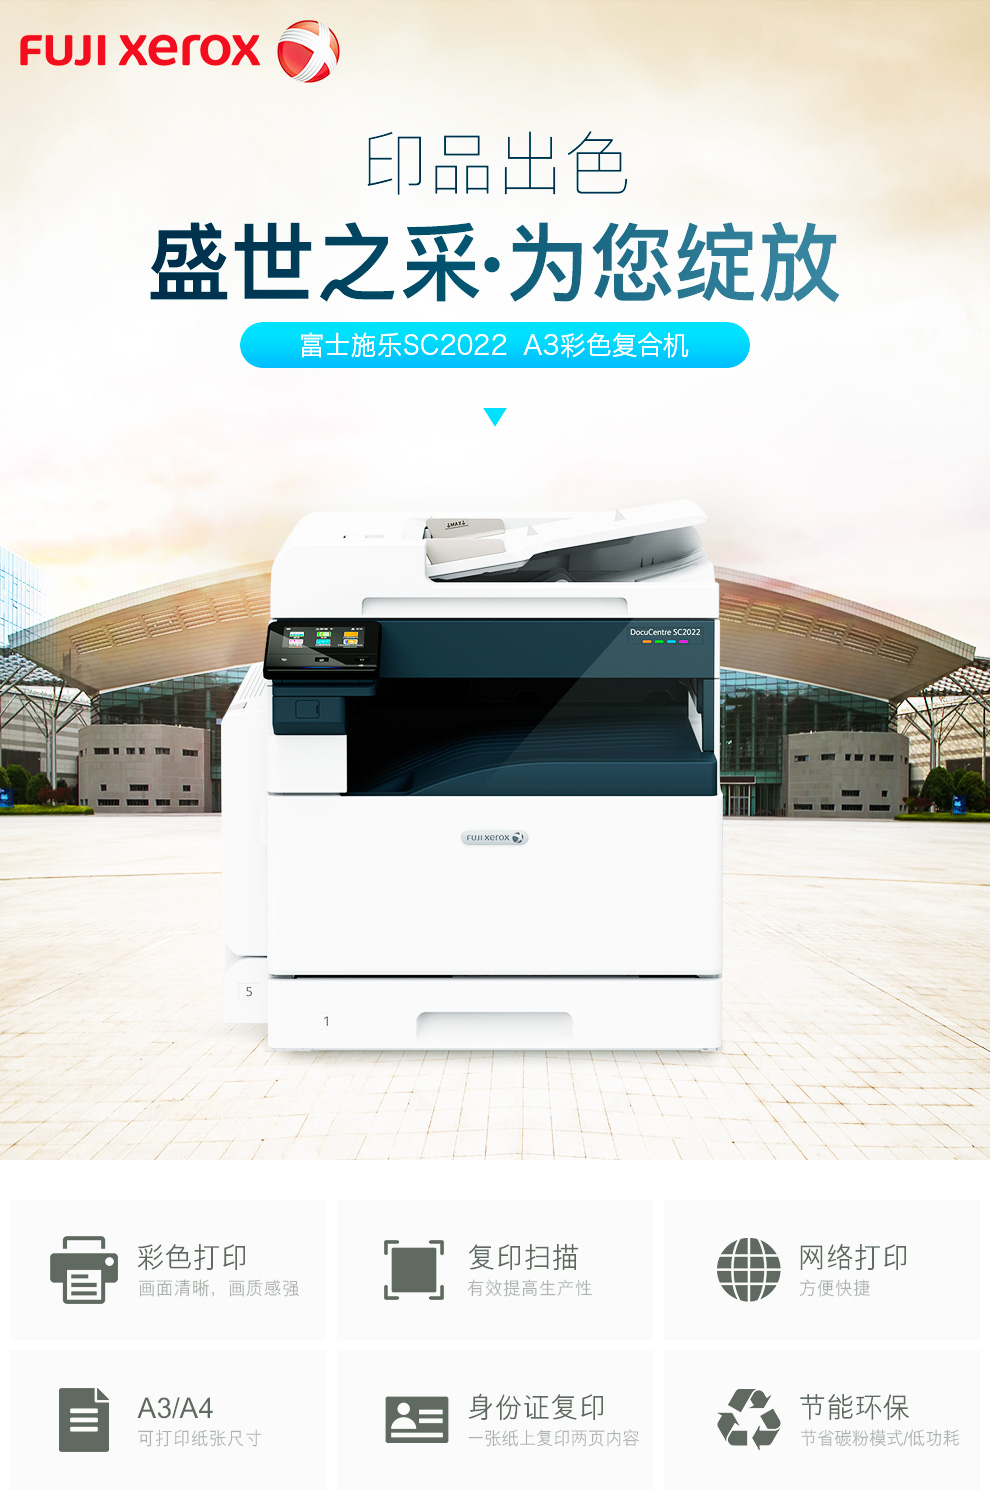 Fuji Xerox 2022 CPSDA Color Copy Printing Integrative Machine A3 Laser  Scanning Composite Machine Network Double-sided Office Household Black and